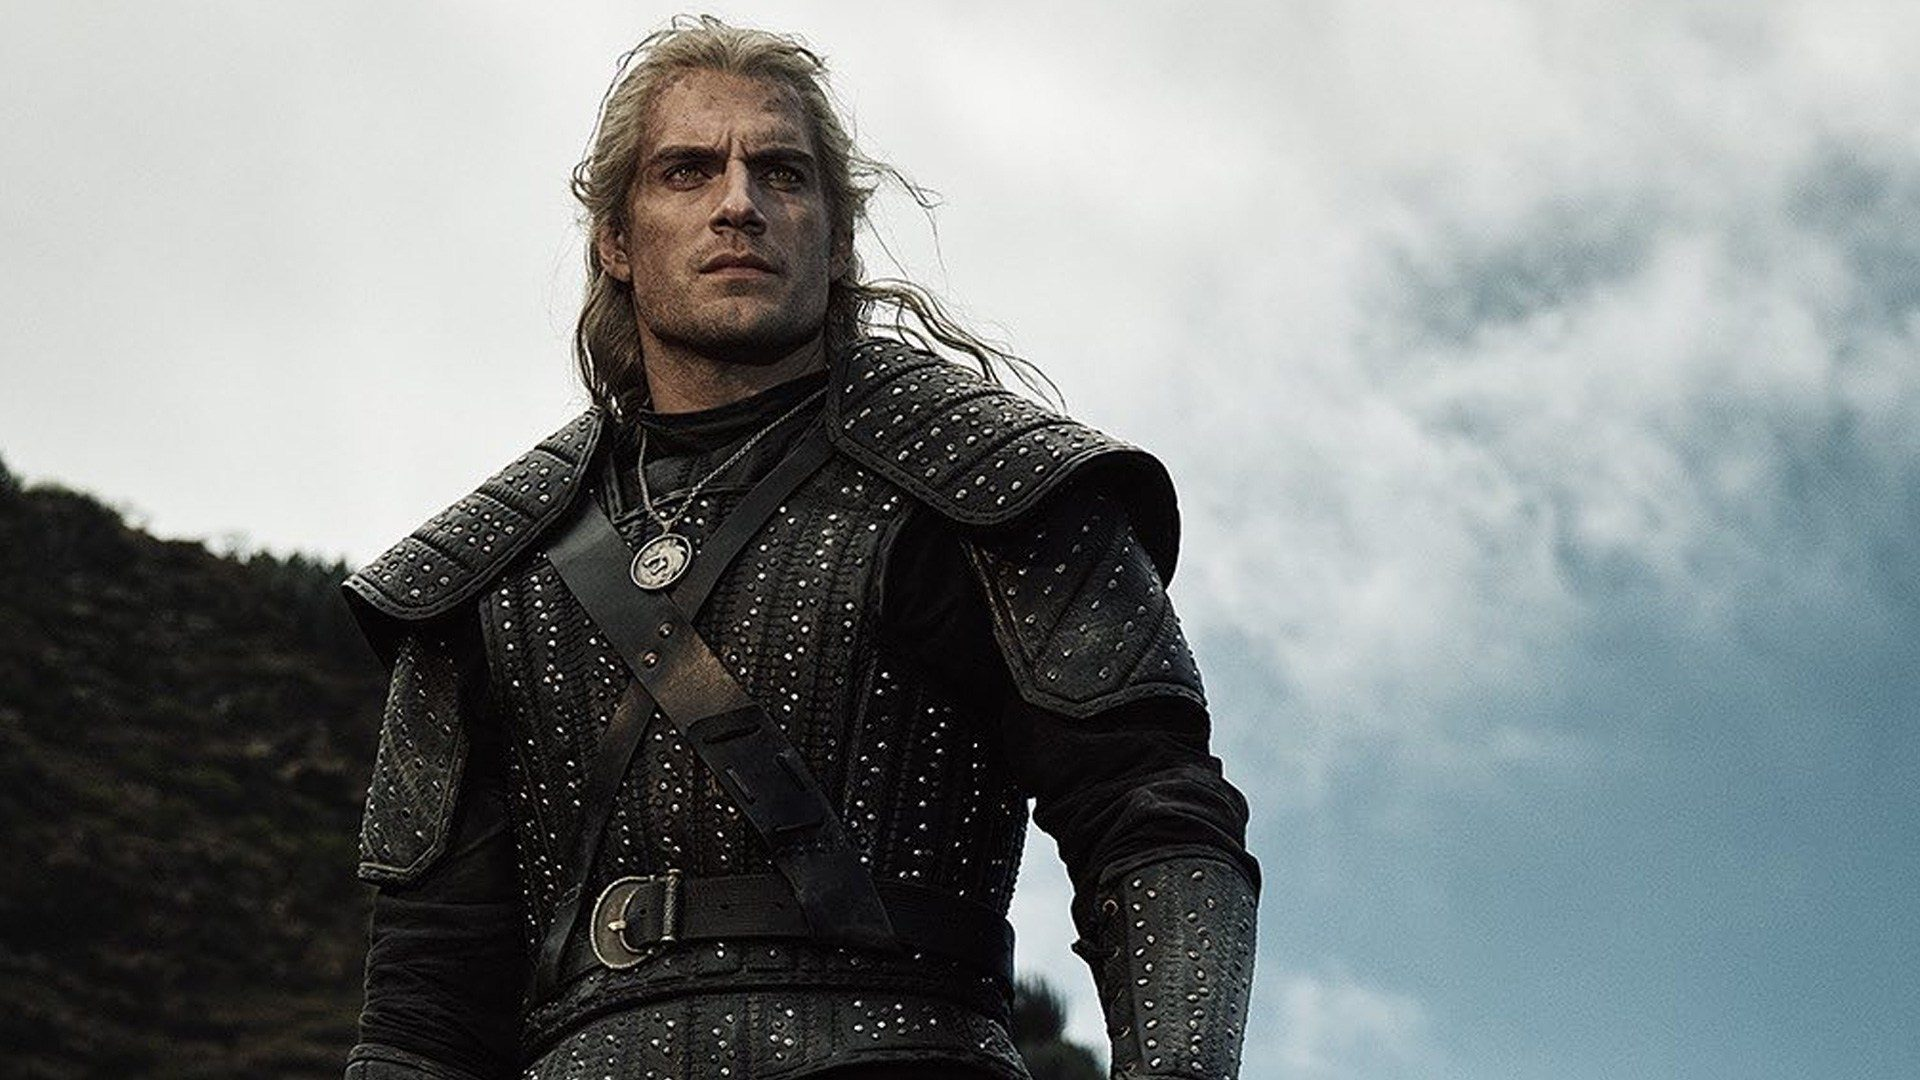 cropped-cropped-The-Witcher-Series-Img-Em-Destaque-4-1